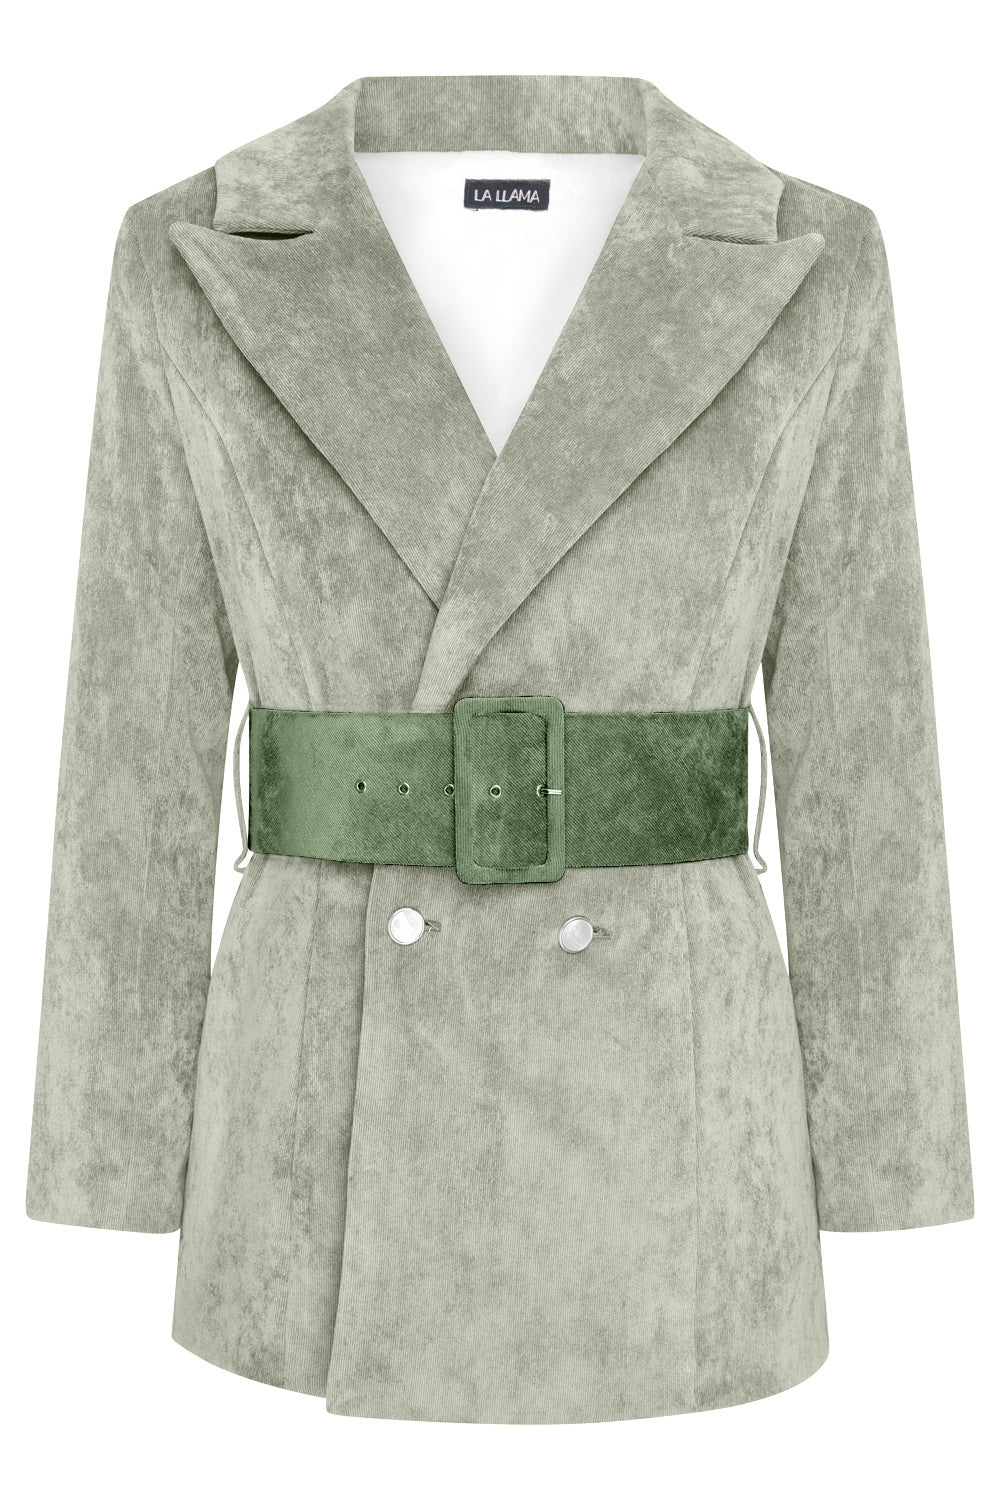 HYDRA BLAZER -  LIGHT GREEN WITH DARK GREEN BELT